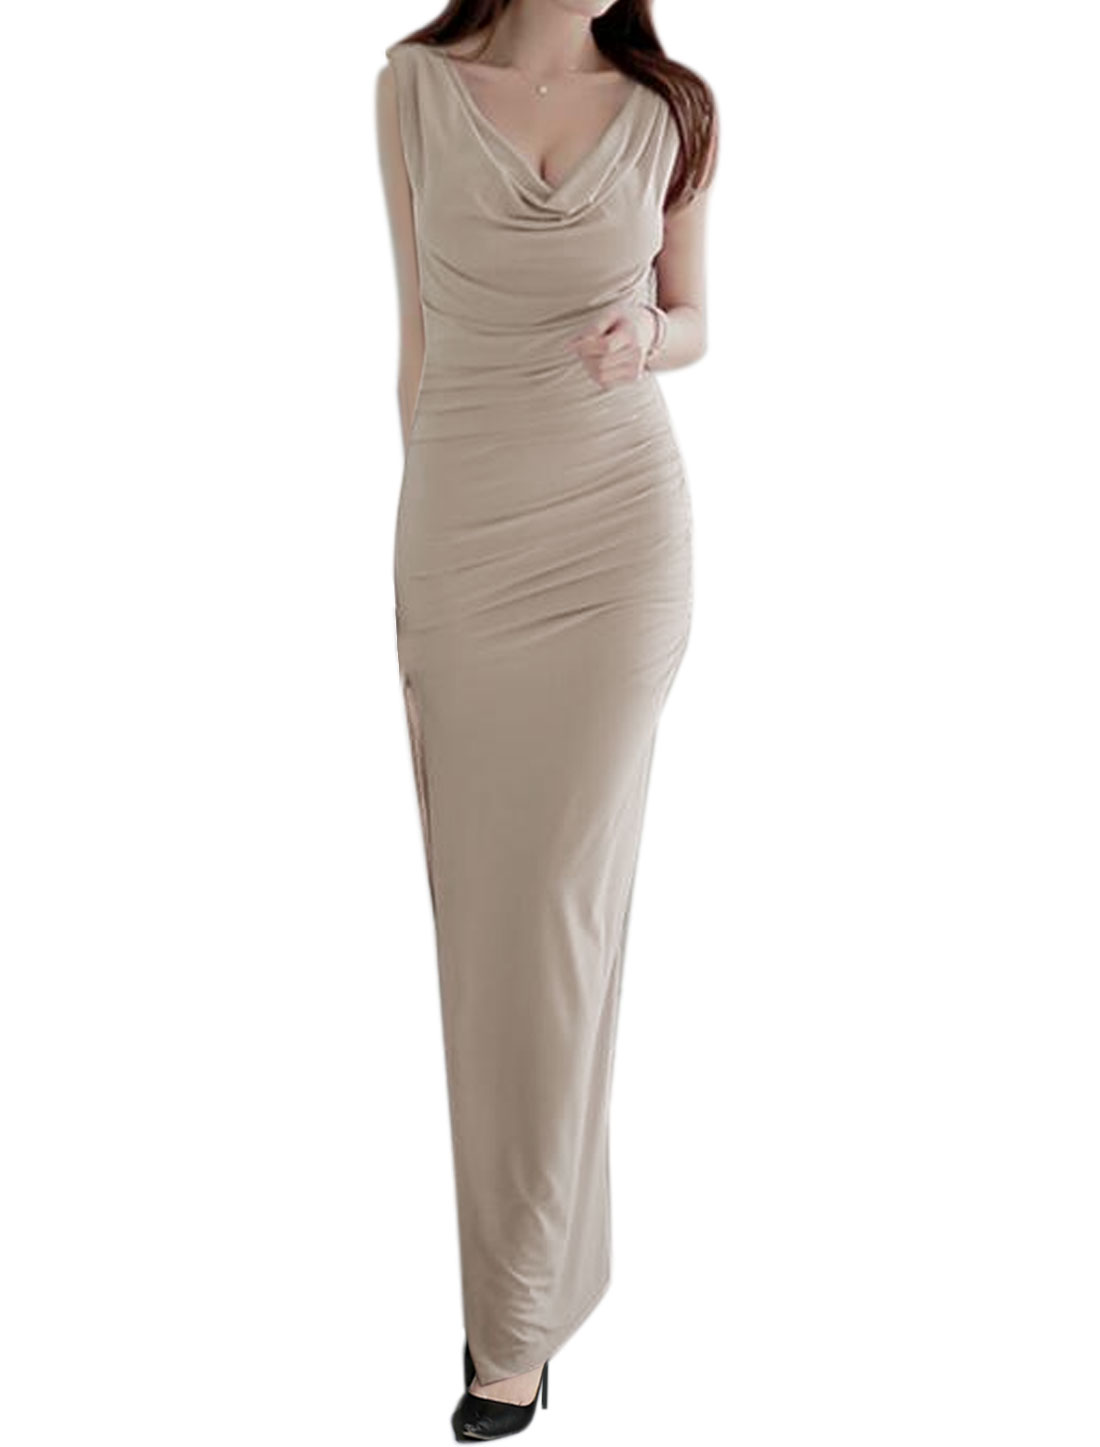 Women Sleeveless Cowl Neck Cross Back Split Side Ruched Maxi Dress Beige M